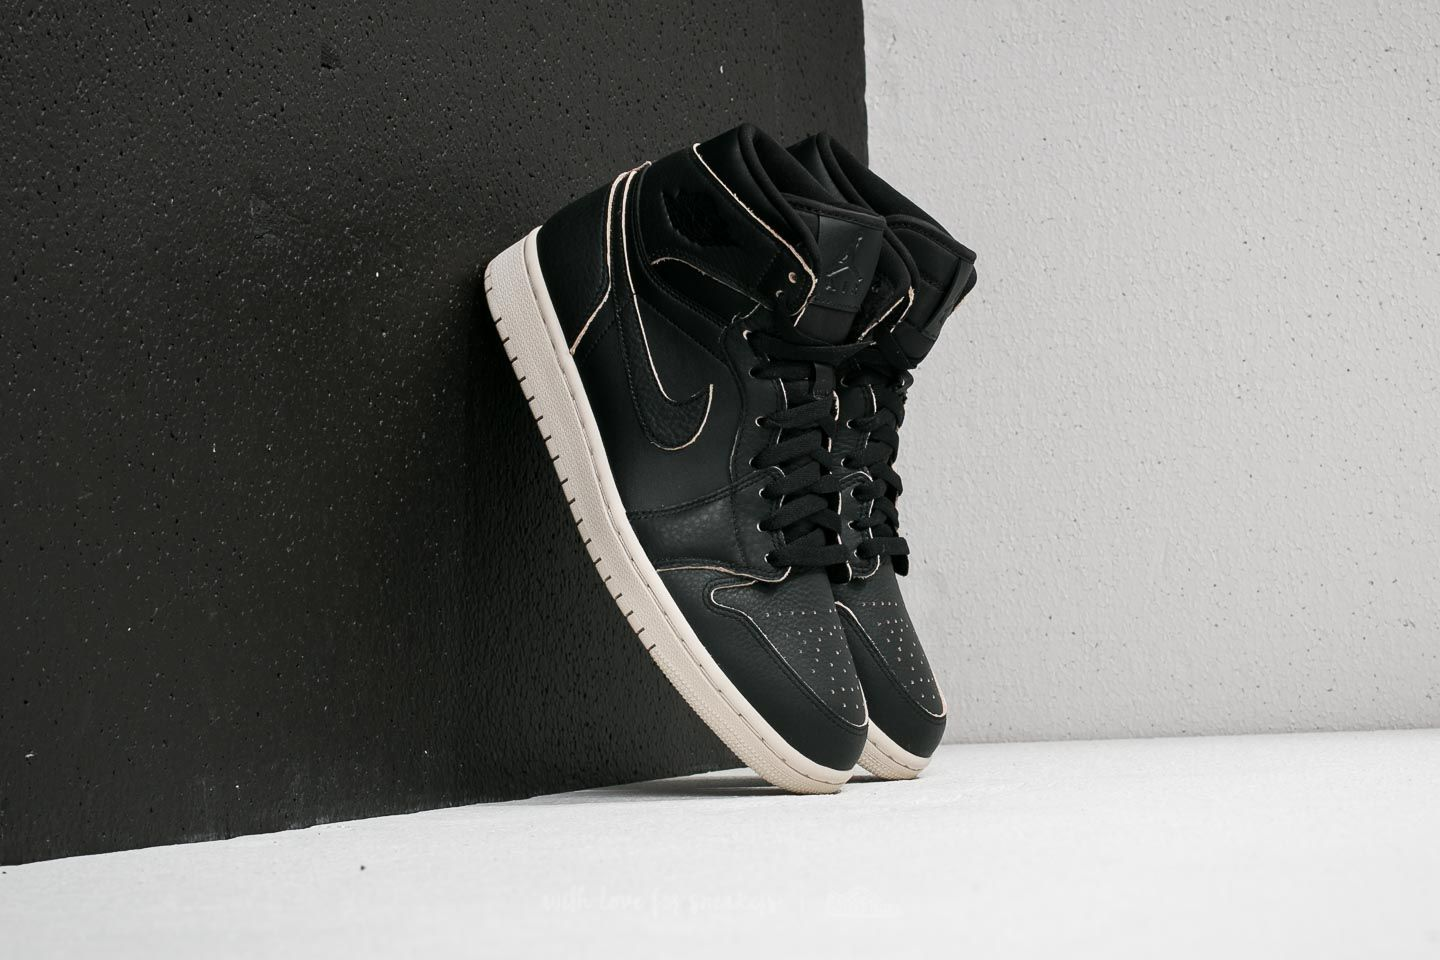 09501a7167e43a Air Jordan 1 Retro High Premium Black  Black  Desert Sand